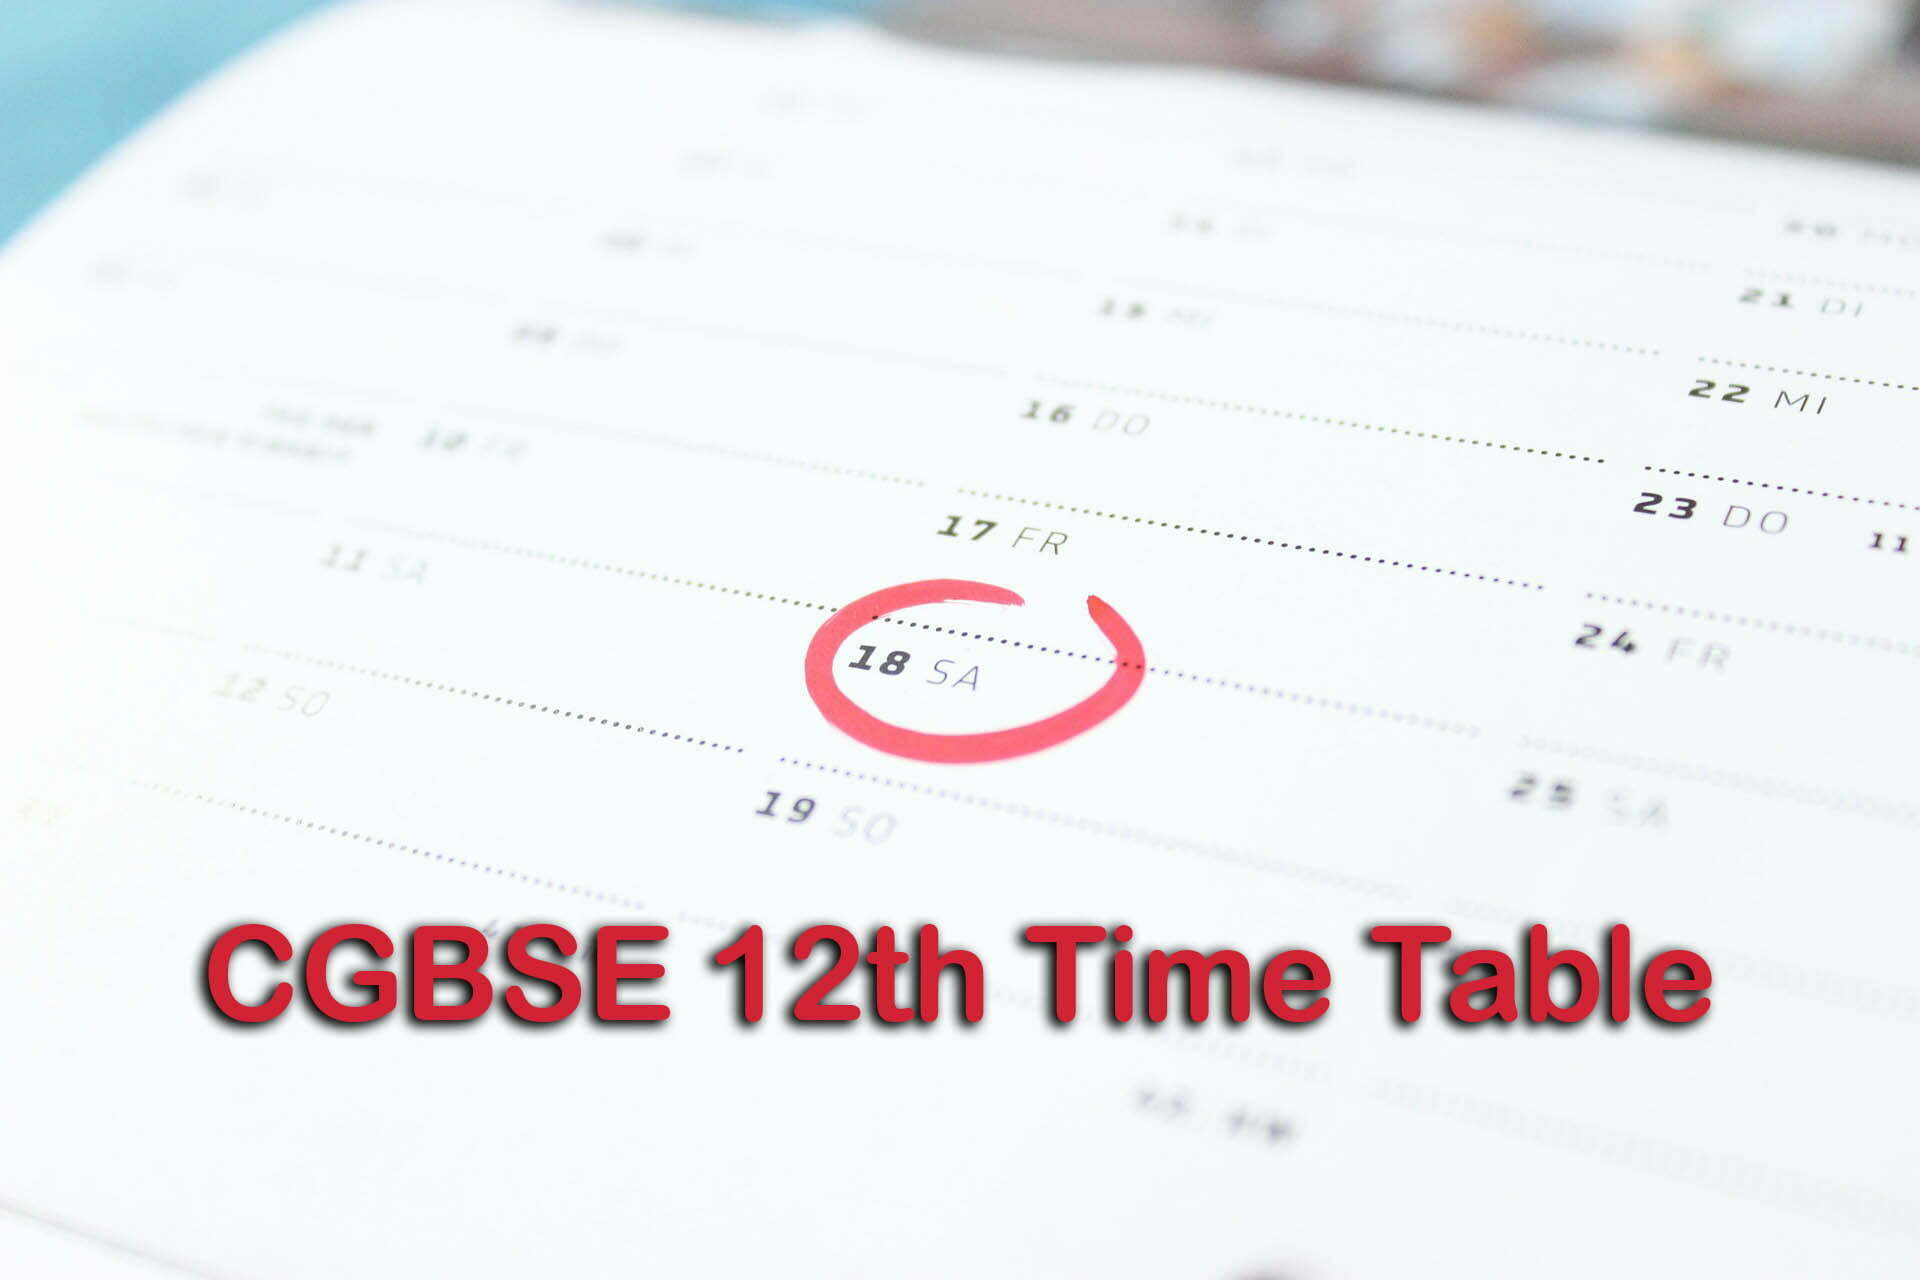 CGBSE 12th Time Table 2020 : CG Board 12th Time Table 2020 PDF Download